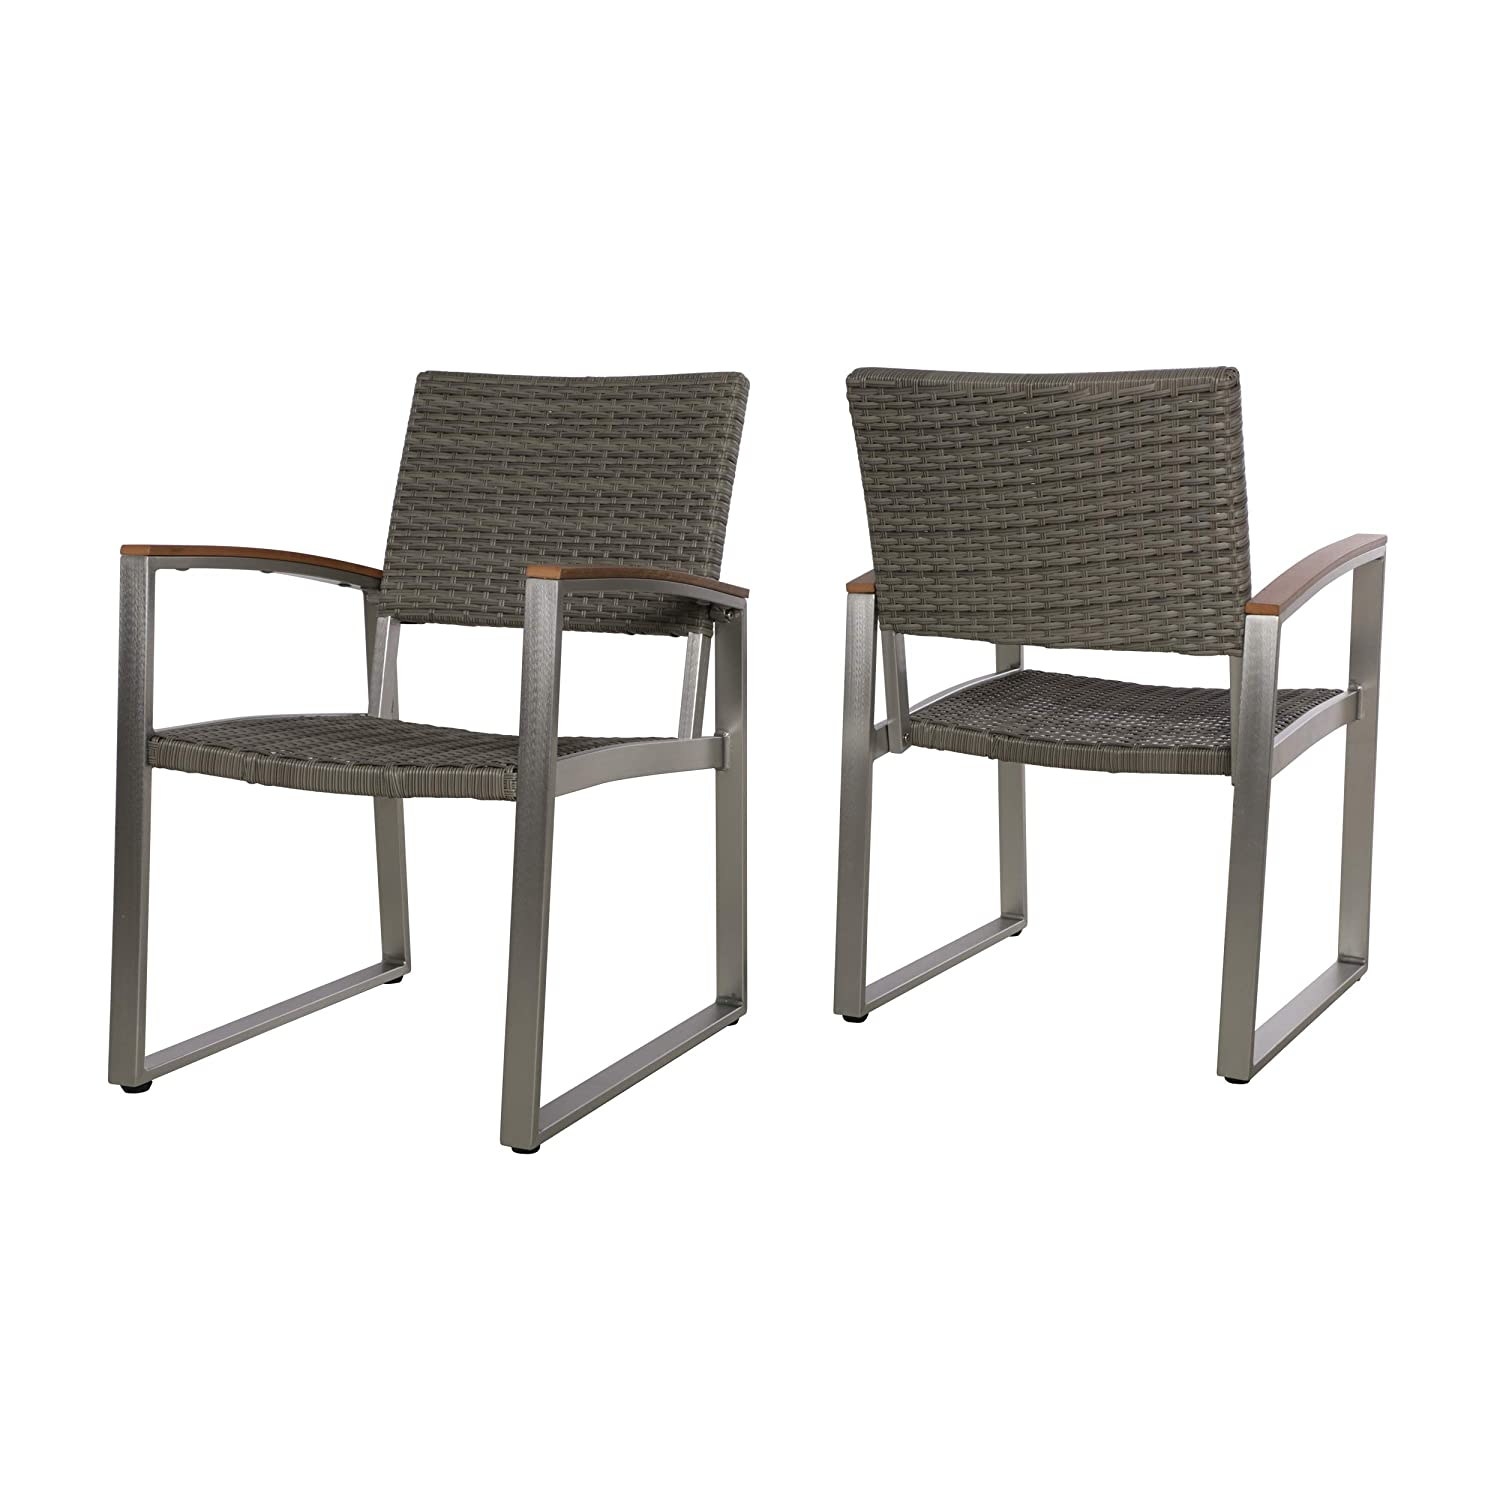 Amazon com aubrey patio dining chairs aluminum wicker seats faux wood arms set of 2 dark gray with gray and natural finish garden outdoor